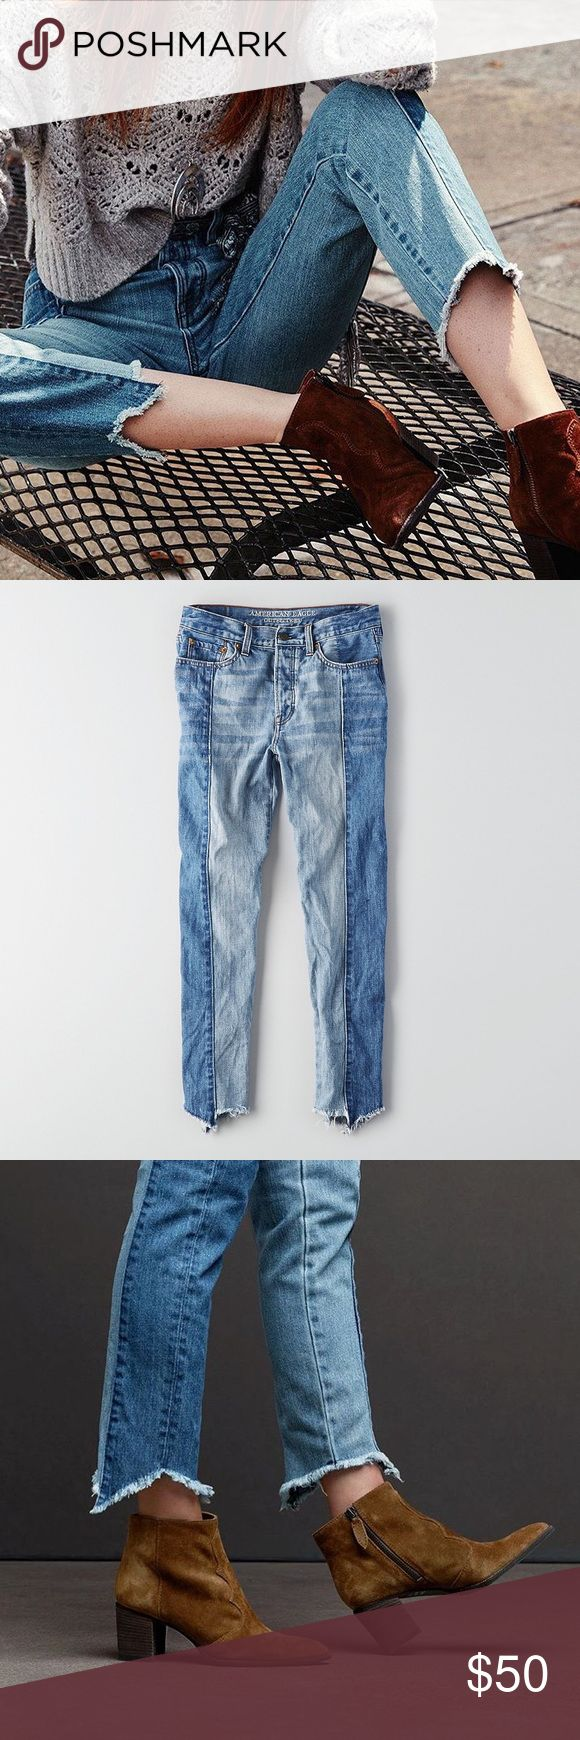 Two Toned Vintage Jeans NEW. Never worn. Excellent condition. Frayed, hi-low hem. Slim through thigh. Straight through the leg. NO TRADES/PAYPAL. American Eagle Outfitters Jeans Ankle & Cropped